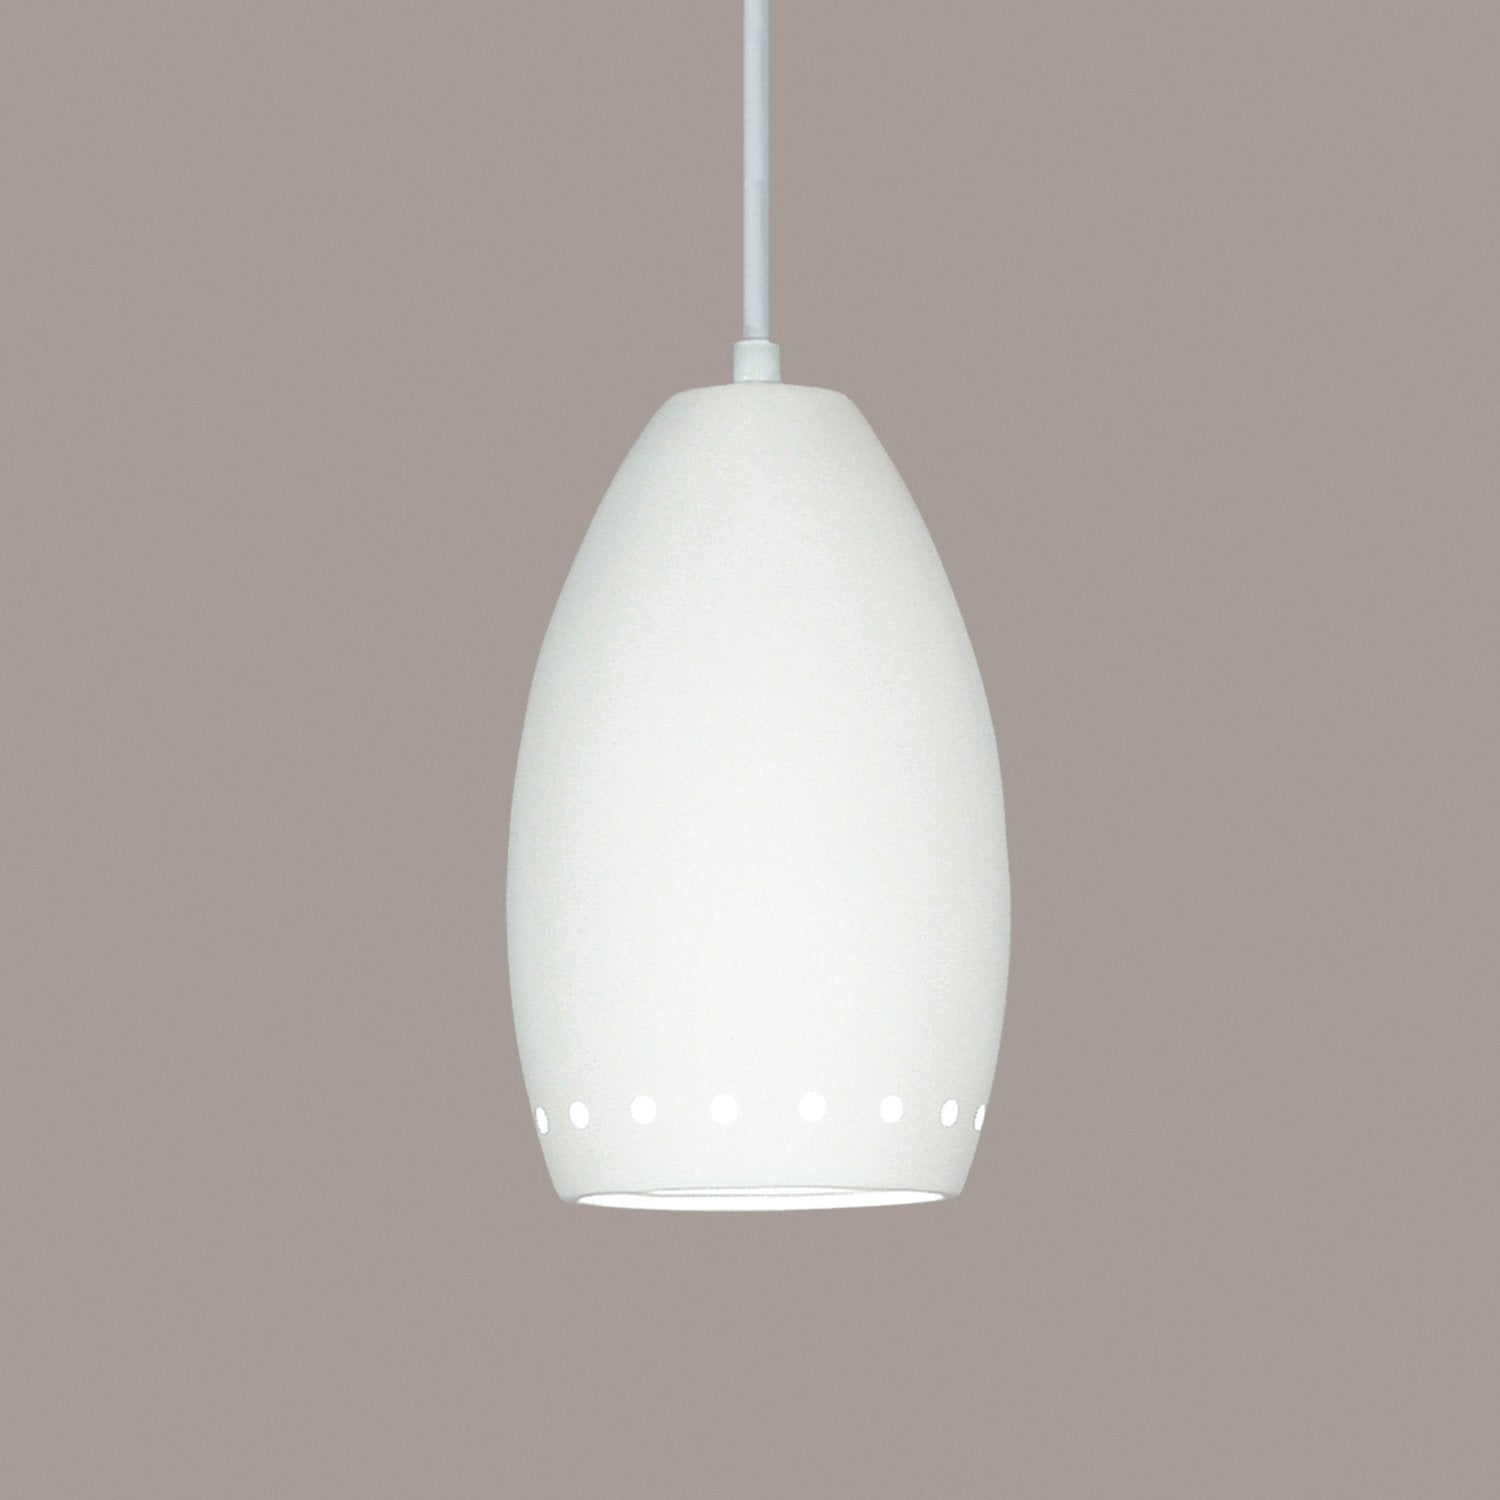 A19 P1503-A32-WCC Islands of Light Collection Grenada Cream Satin Finish Pendant